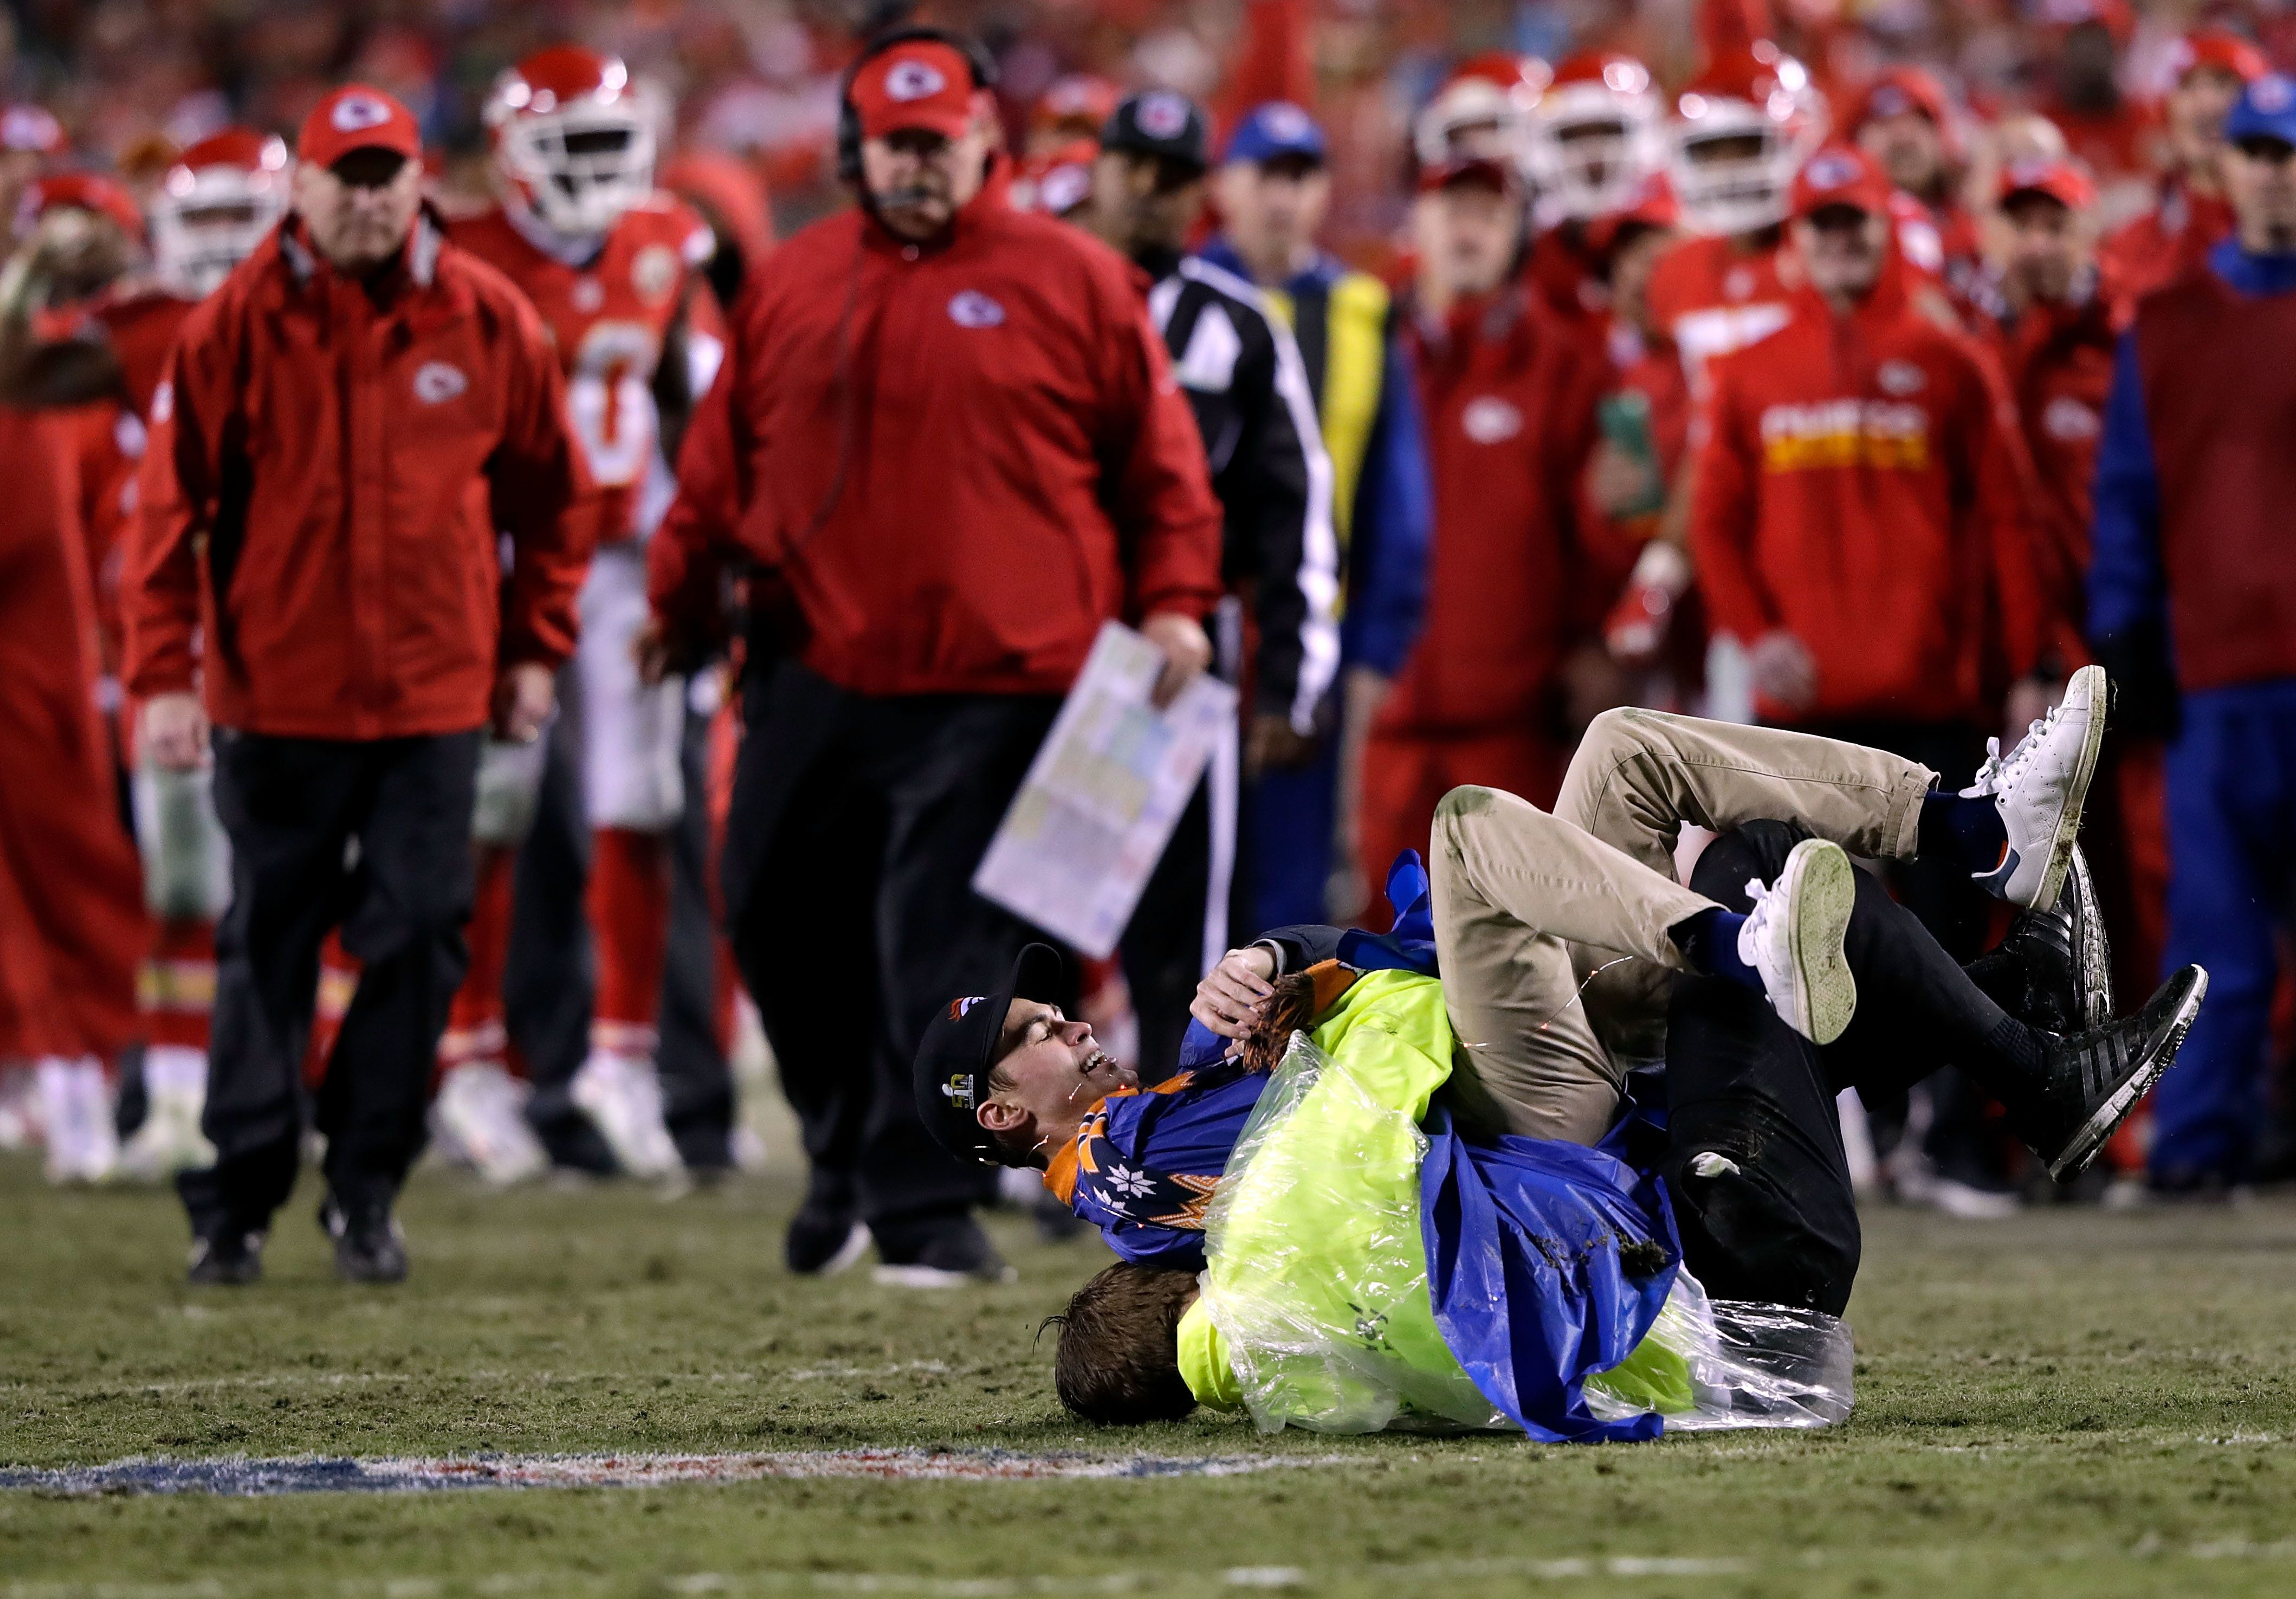 KANSAS CITY, MO - DECEMBER 25:  A fan is tackled after running onto the field during the game between the Kansas City Chiefs and the Denver Broncos at Arrowhead Stadium on December 25, 2016 in Kansas City, Missouri.  (Photo by Jamie Squire/Getty Images)